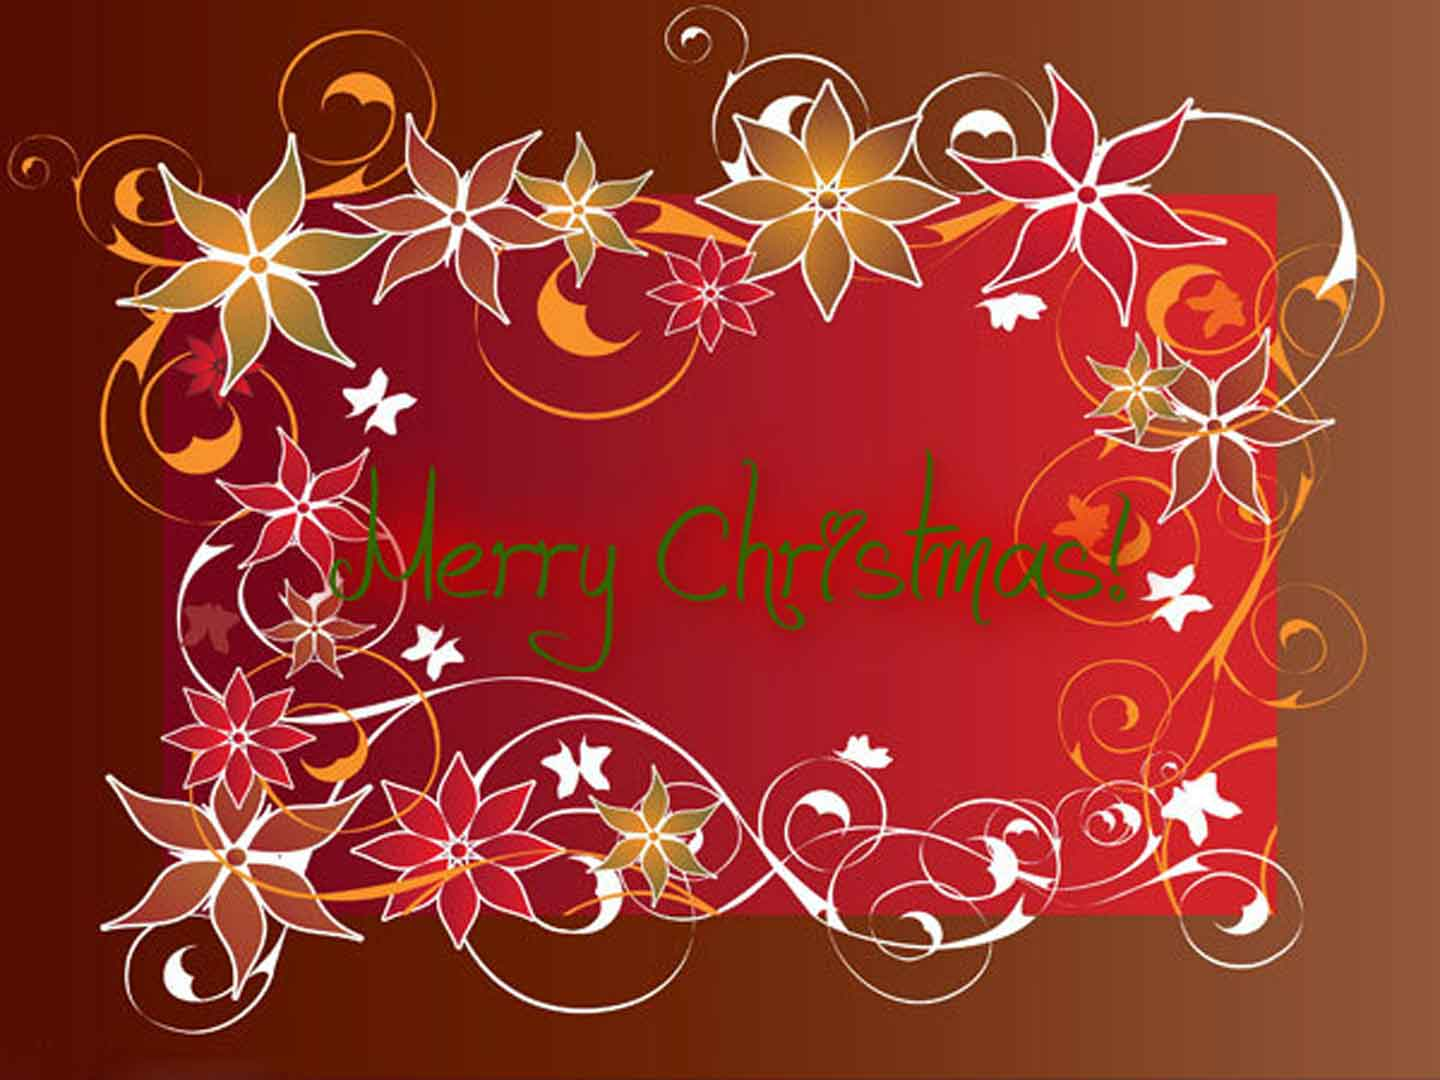 Christmas images pictures photos Wallpapers HD Christmas  Christmas pictures Christmas photos Christmas Images Christmas greeting cards